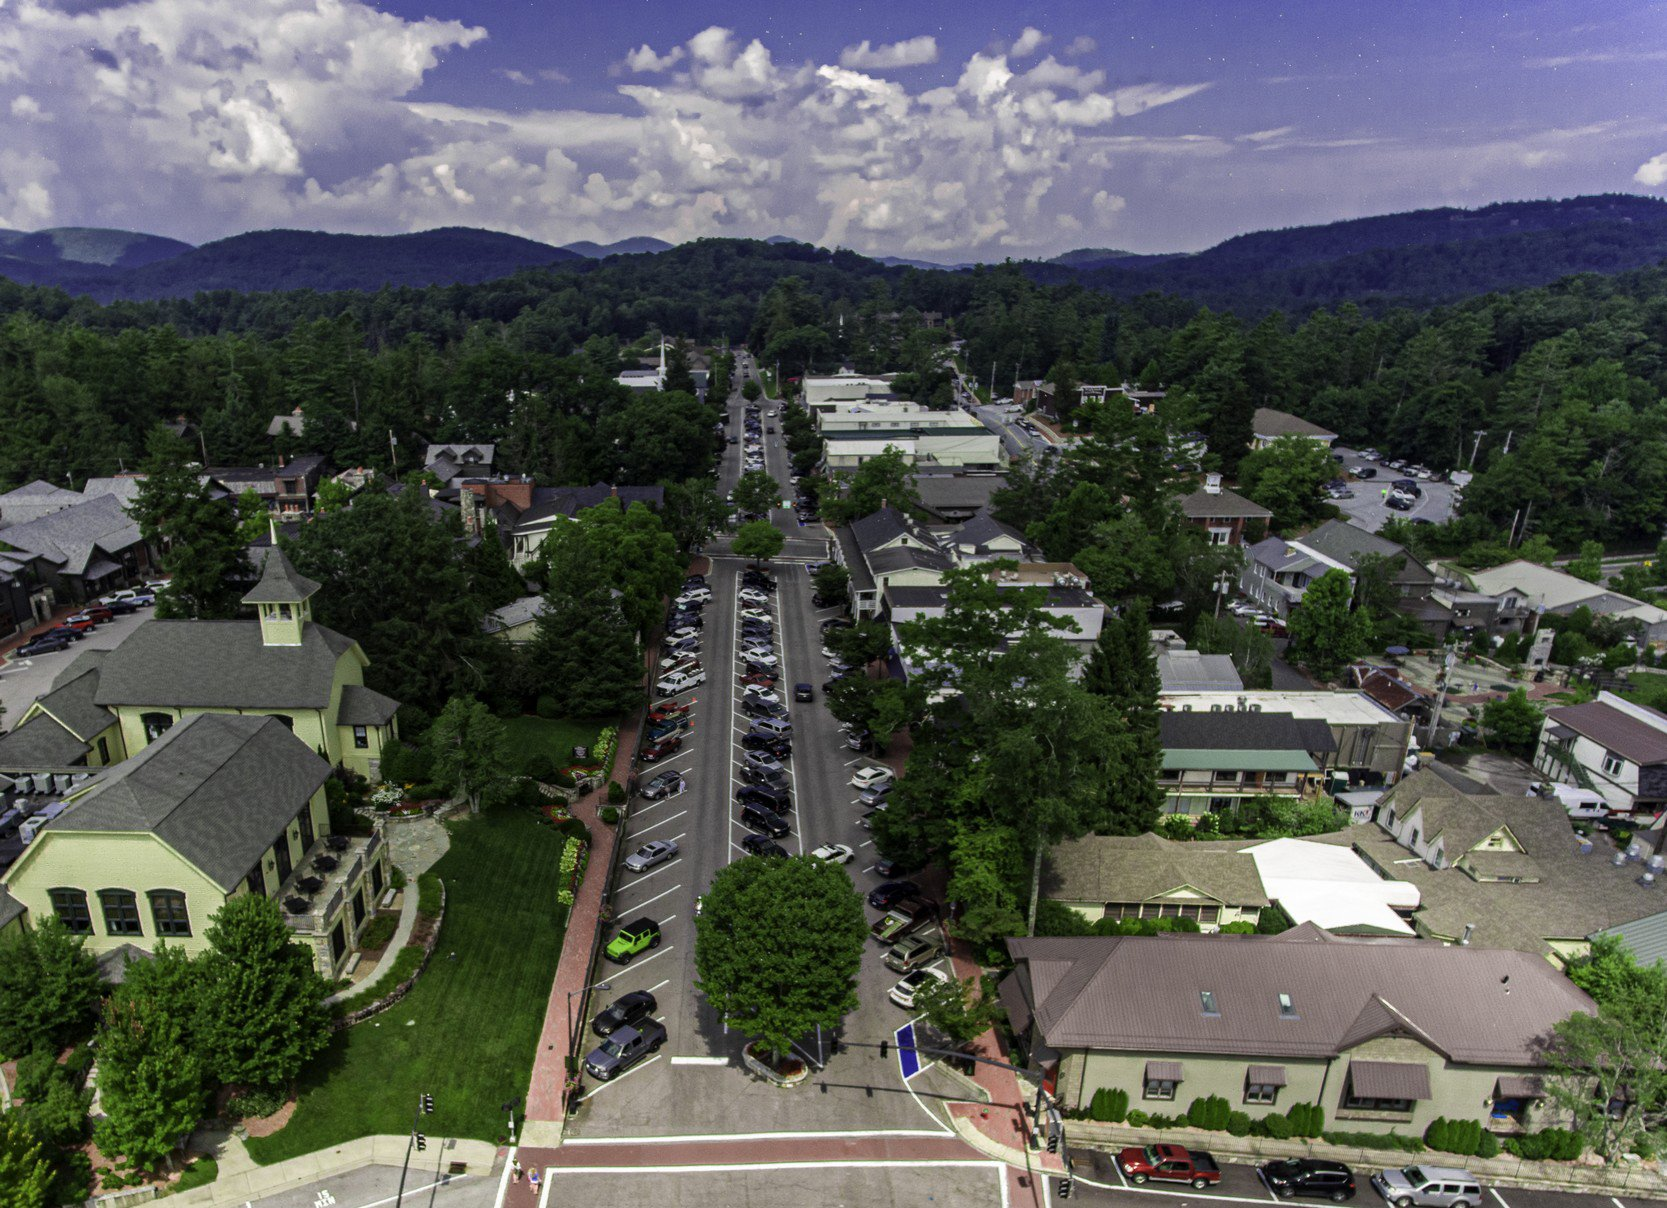 highlands-nc-aerial-view-2020